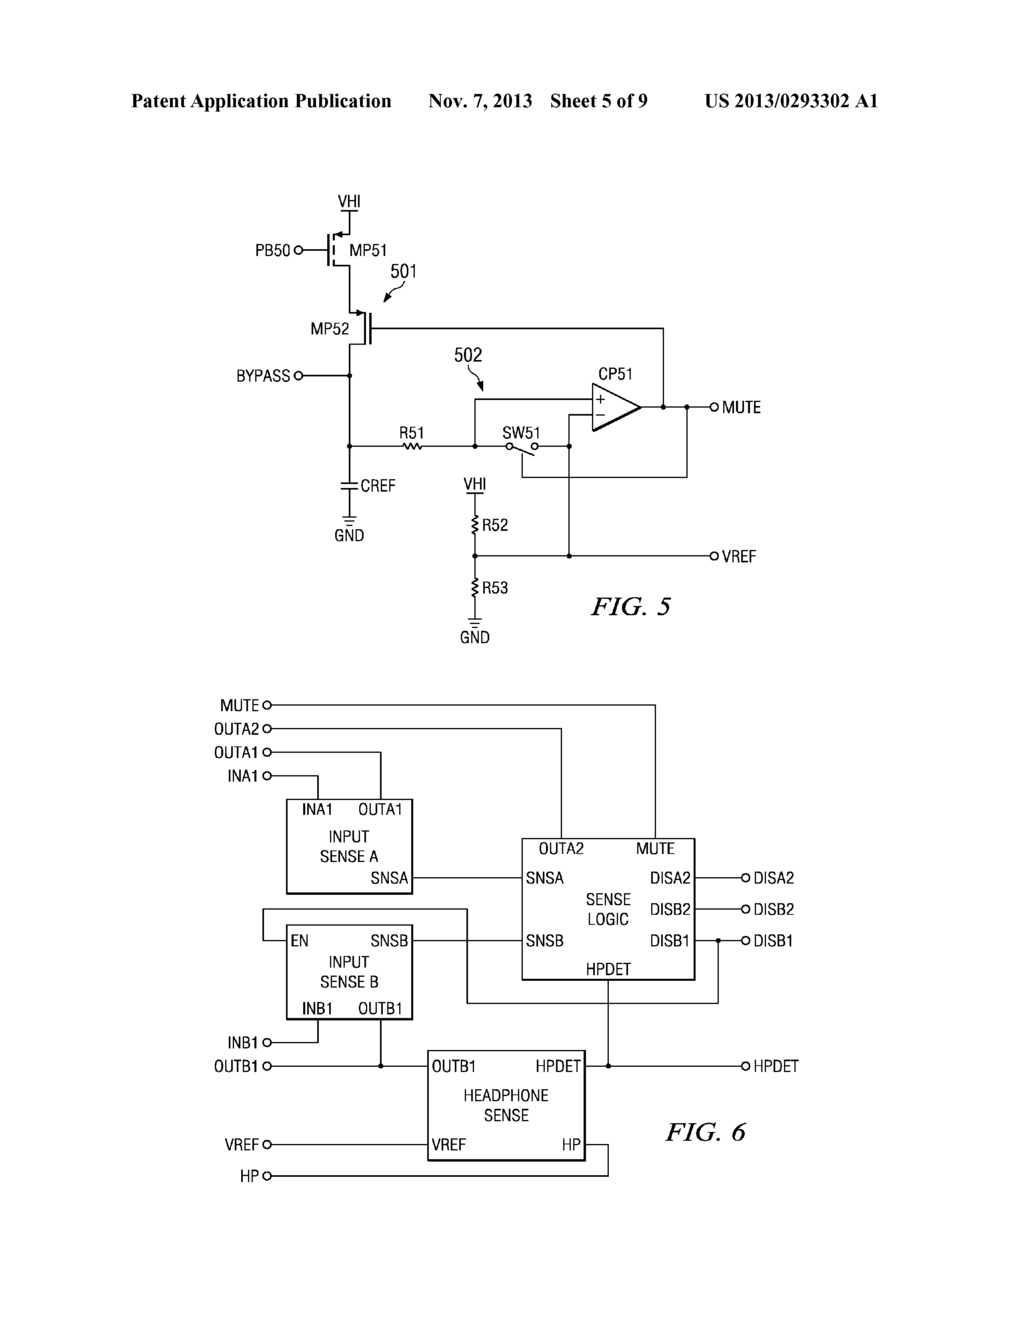 Diagram Amp Pop Modern Design Of Wiring Boomer Audio Power Amplifier Using Lm4906 Output Coupling Capacitor Free Dynamically Rh Patentsencyclopedia Com Adp Class Ab